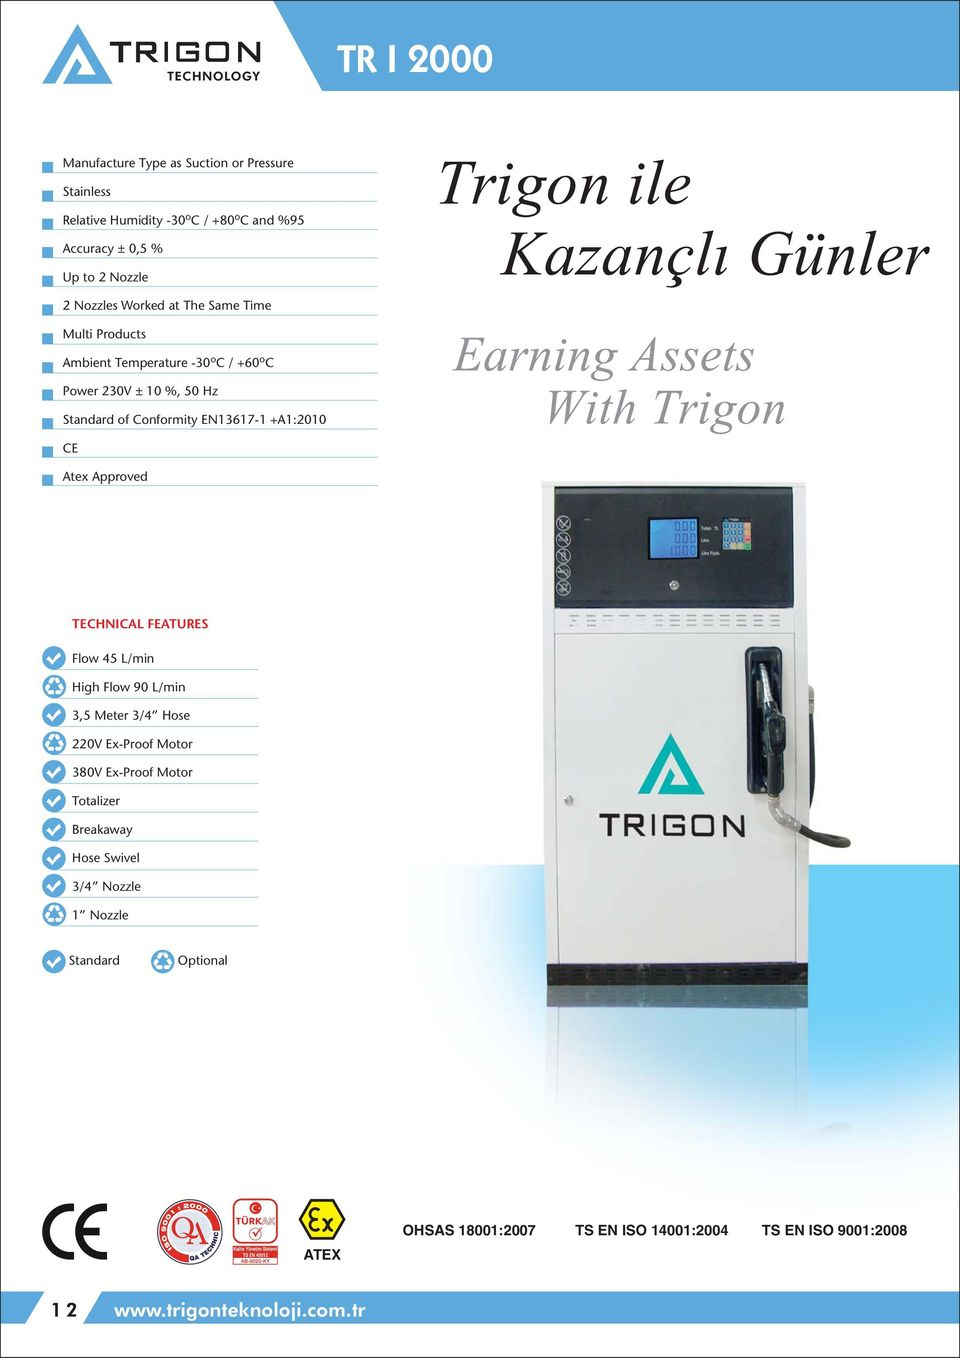 Günler Earning Assets With Trigon Atex Approved TECHNICAL FEATURES Flow 45 L/min High Flow 90 L/min 3,5 Meter 3/4 Hose 220V Ex-Proof Motor 380V Ex-Proof Motor